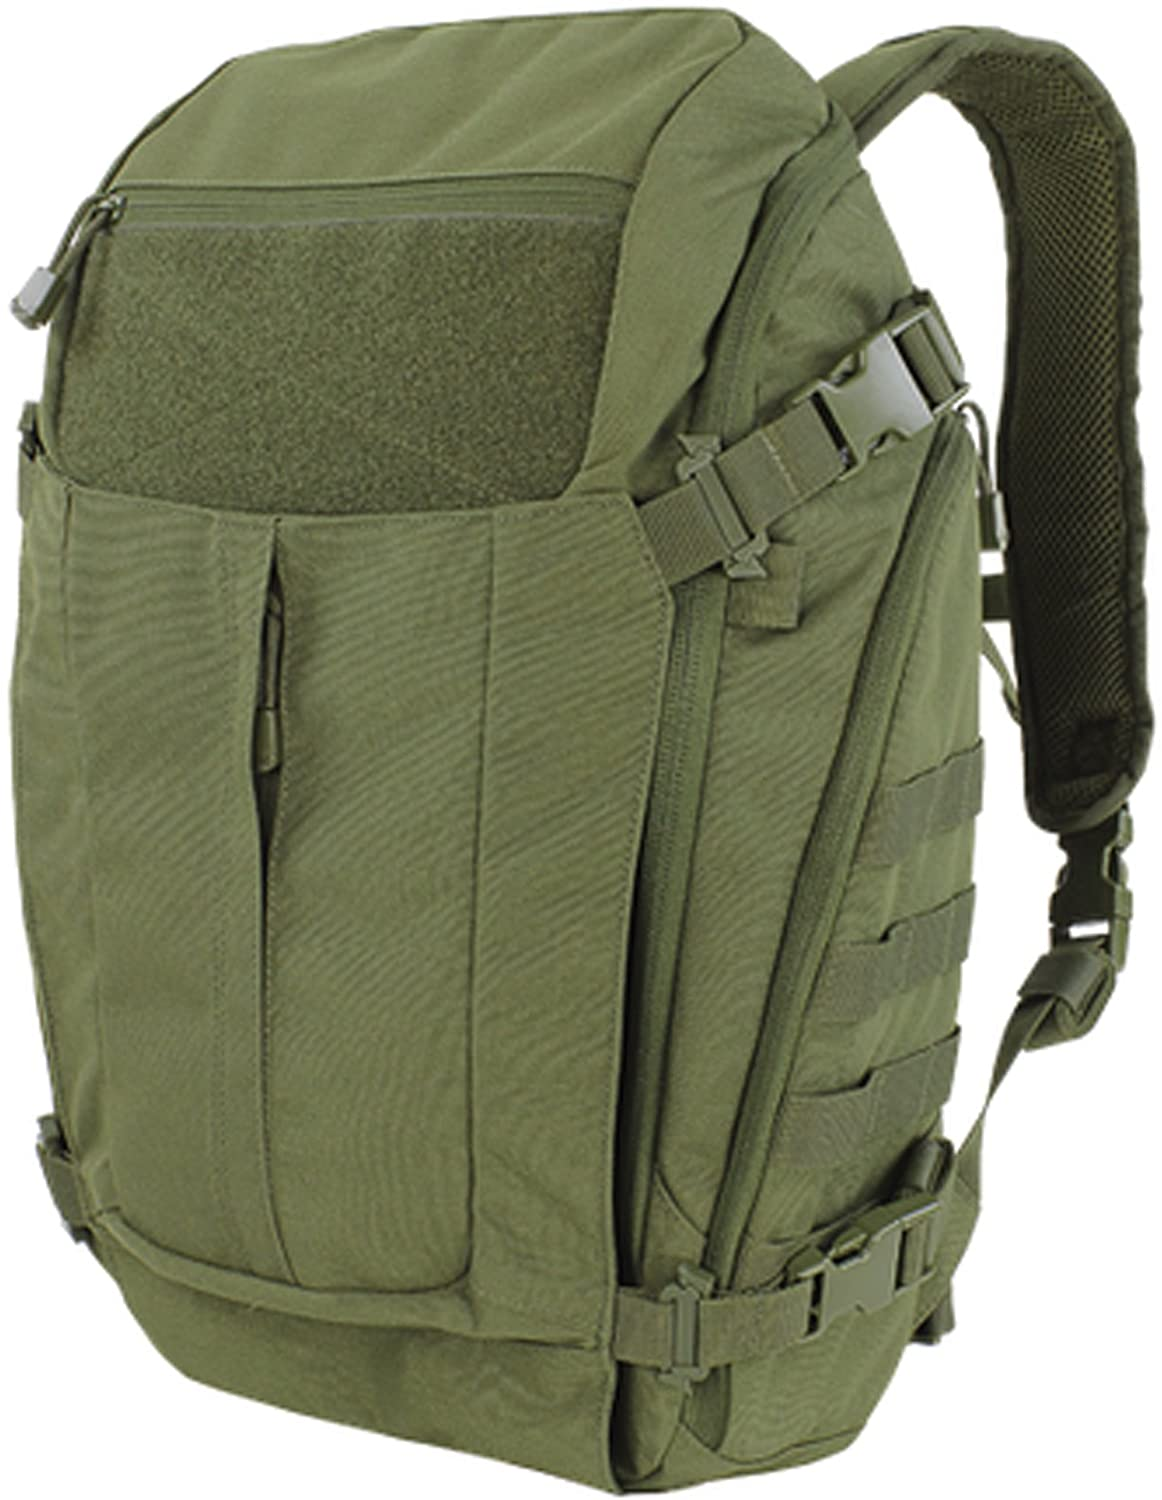 Condor Outdoor Solveig Assault Pack (Olive Drab)